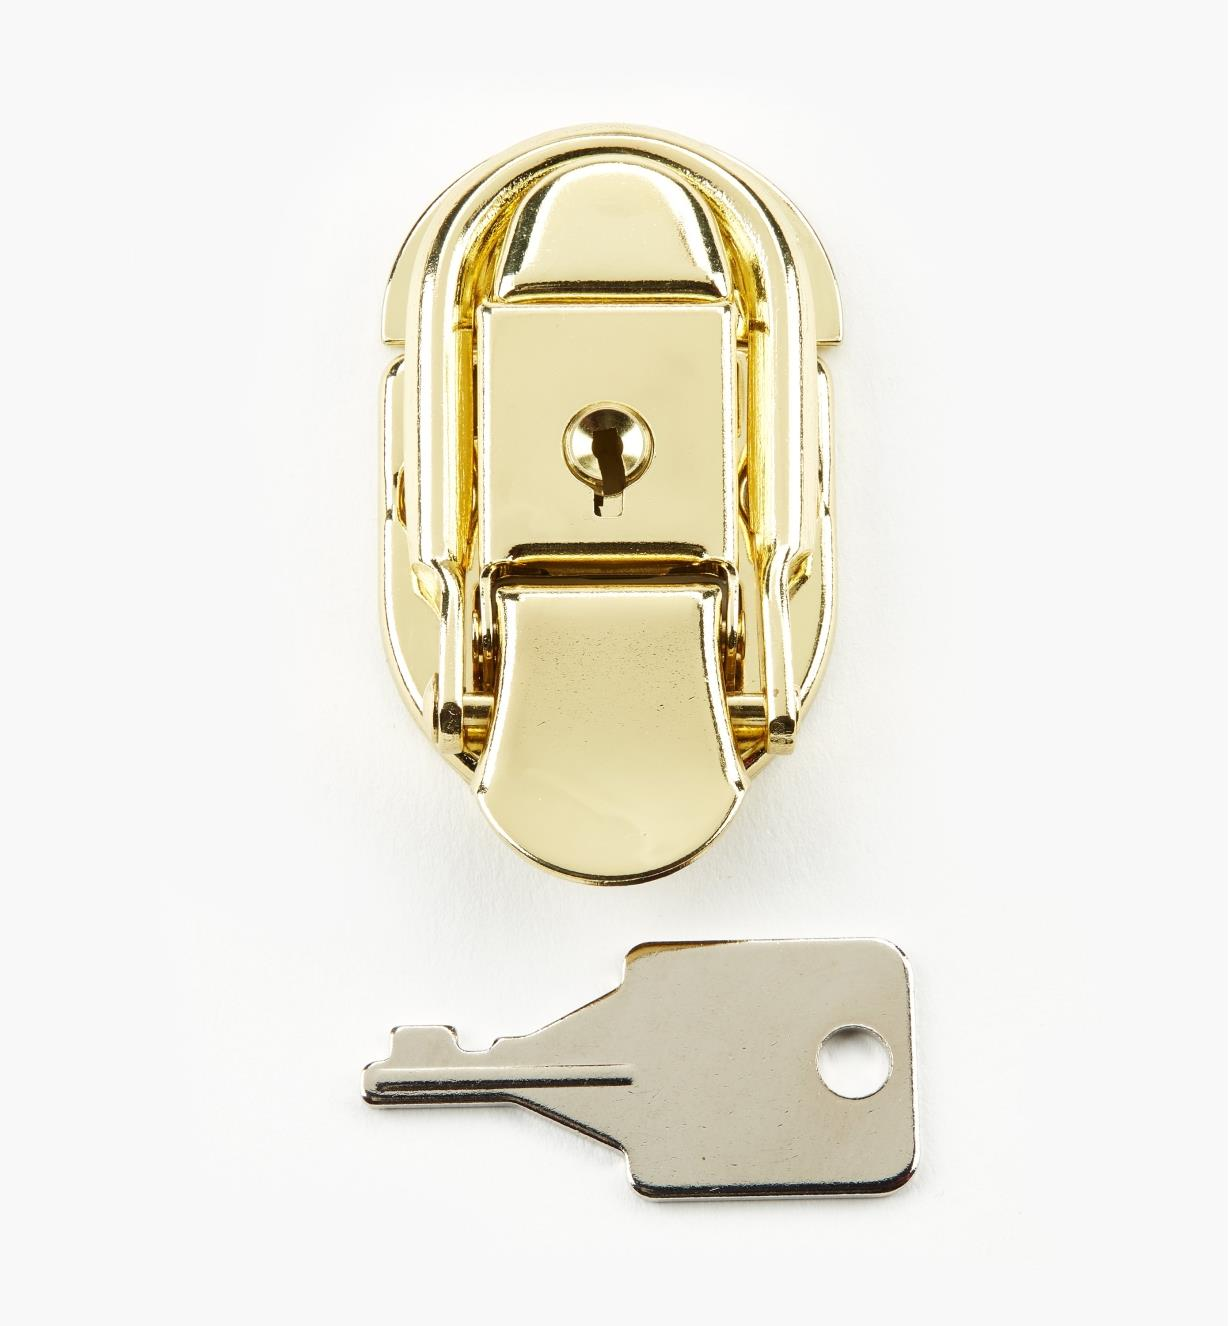 00S5550 - Brass Plate Locking Draw Latch